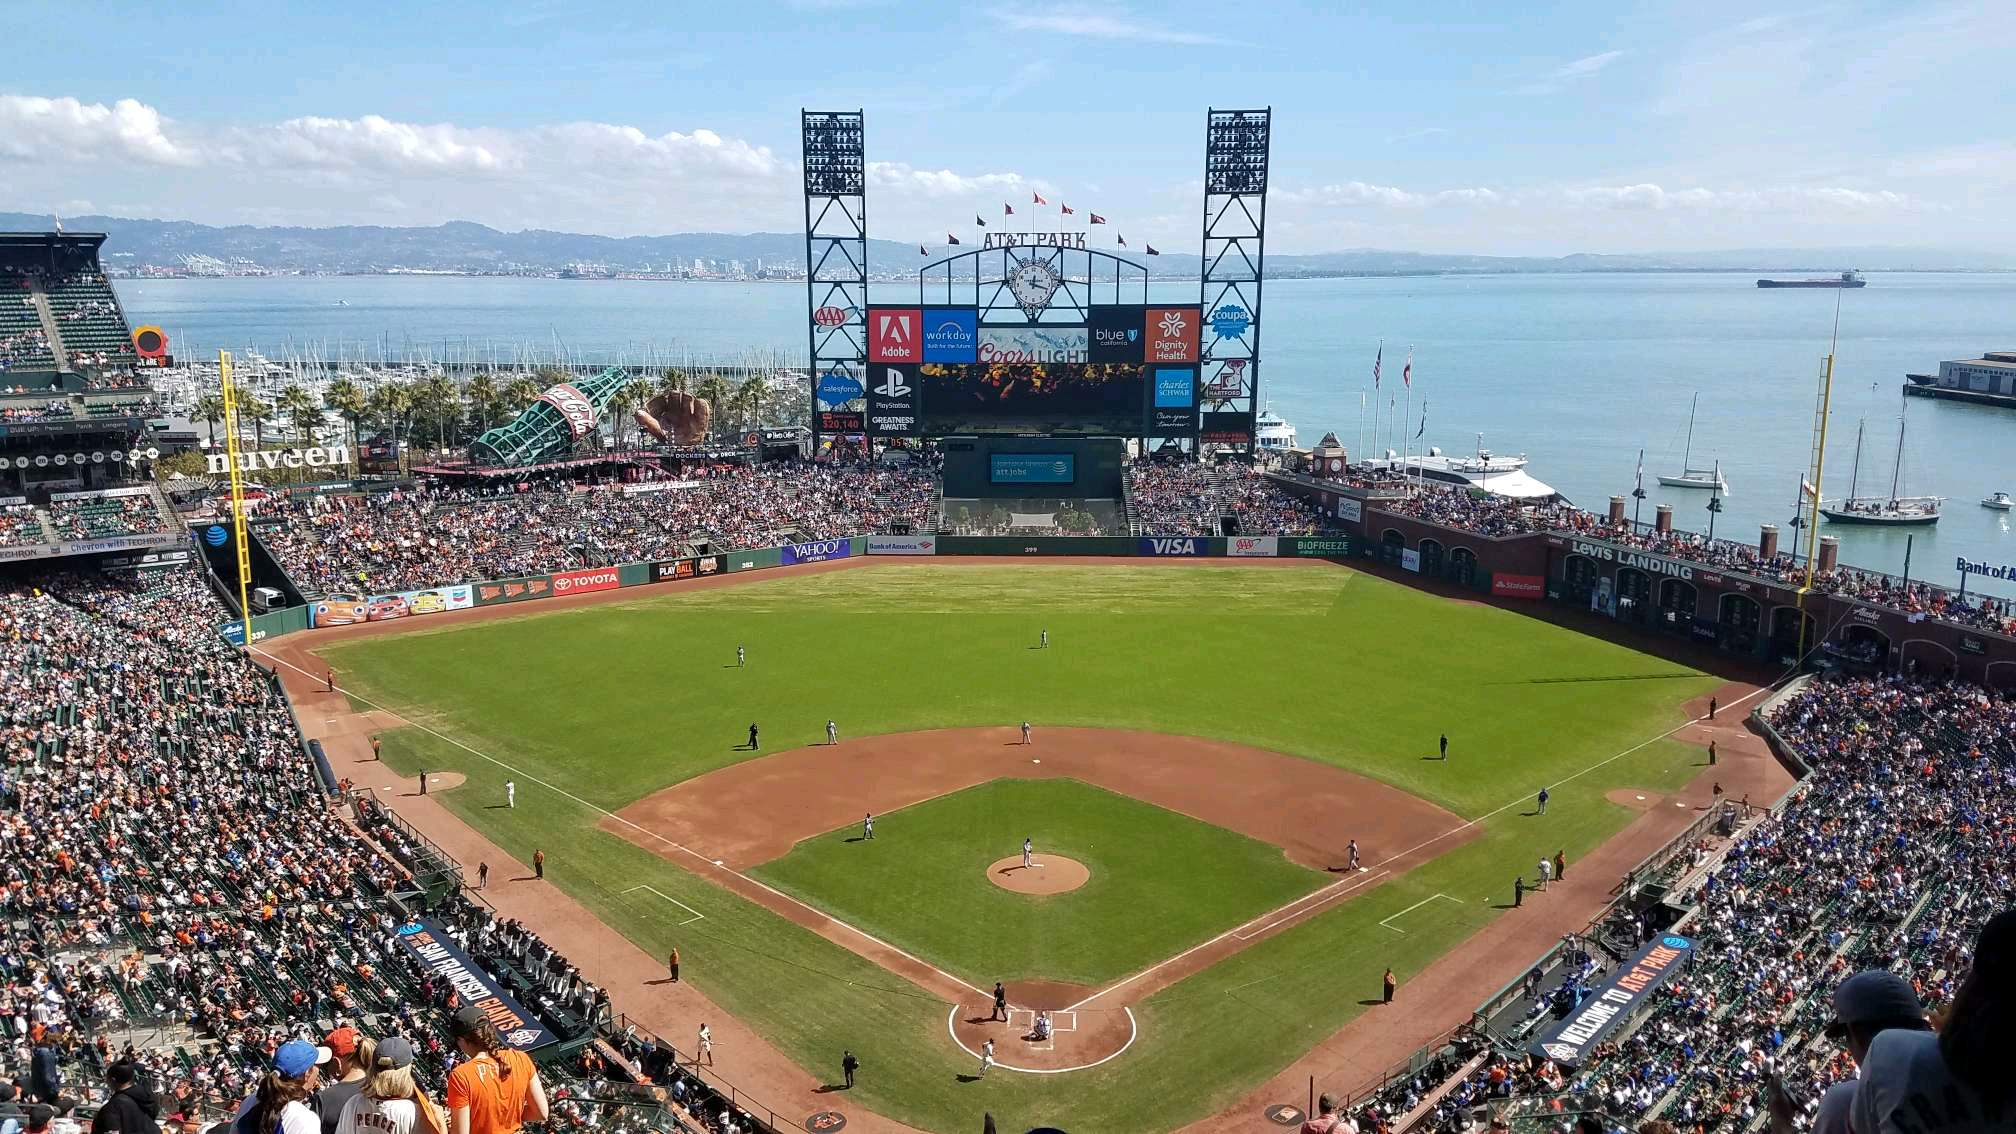 Oracle Park Section VR315 Row 18 Seat 13